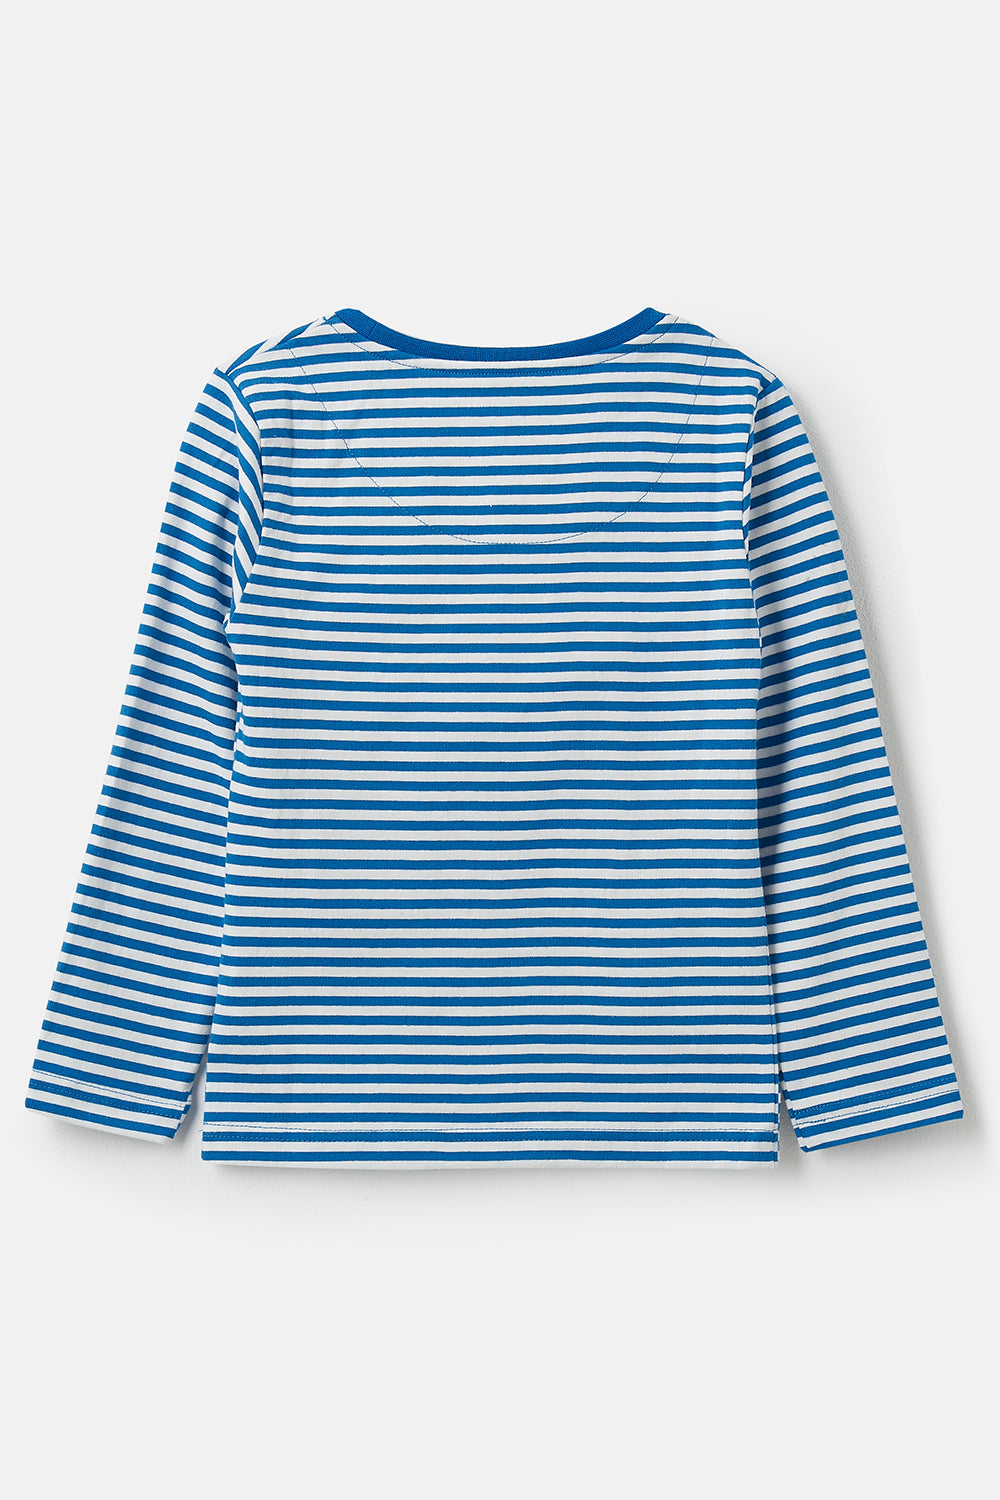 Boy's Tops - Oliver - Blue Striped Top